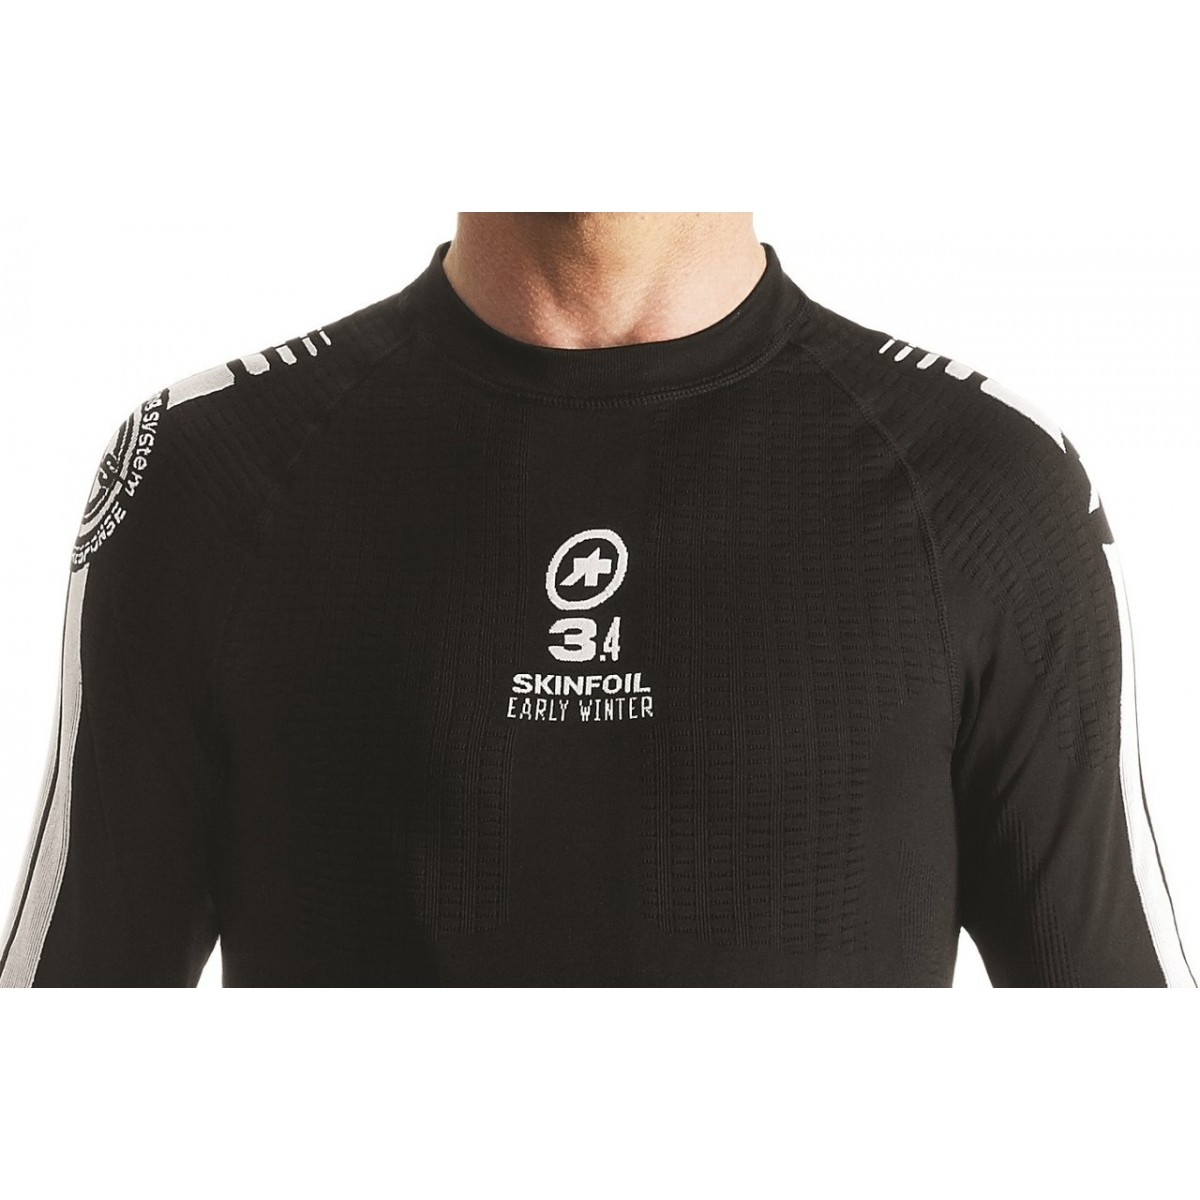 CAMISOLA INTERIOR ASSOS LS SKINFOIL EARLY WINTER EVO7 - ROUPA ... 903a3b978c8